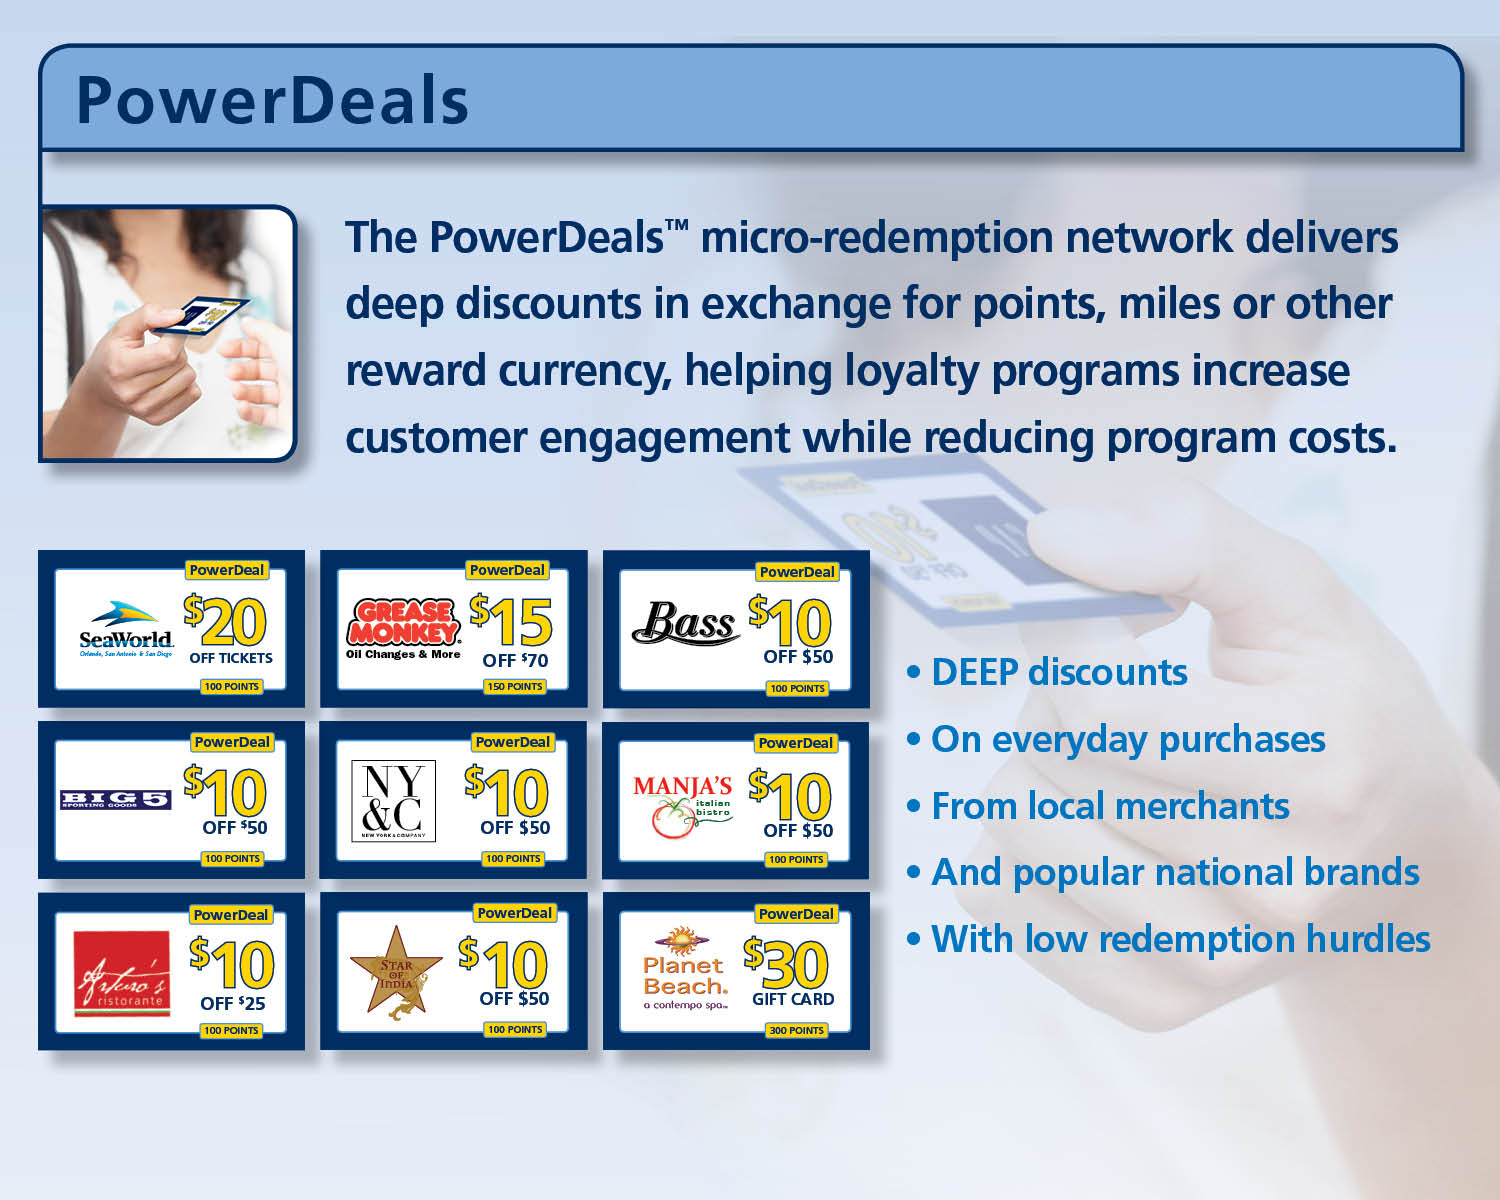 28daa91304 Access private-label customer incentive programs and loyalty incentives  feature exclusive savings from popular restaurants